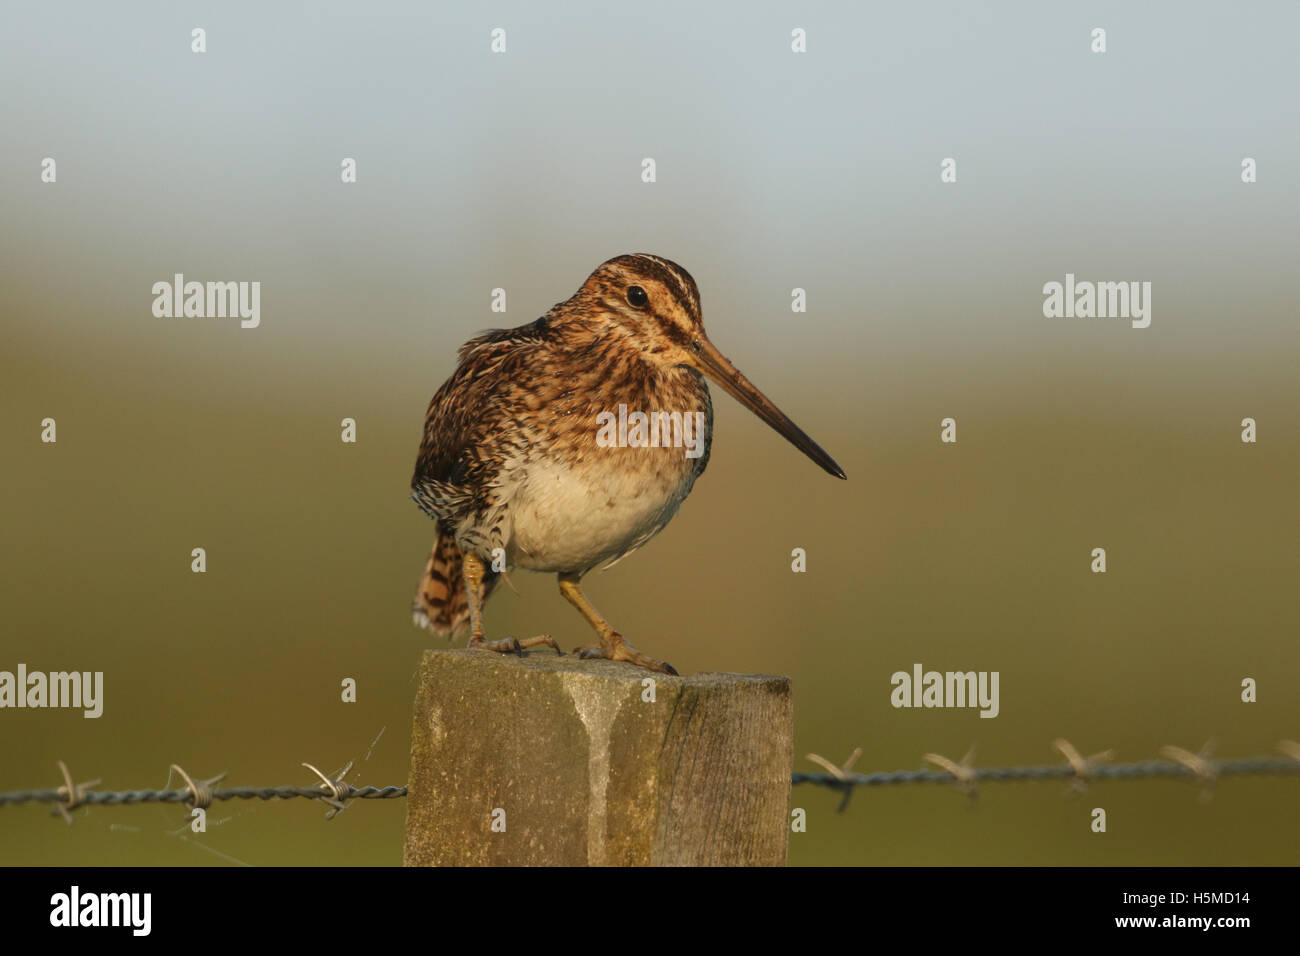 A Snipe (Gallinago gallinago) perched on a post early morning. - Stock Image